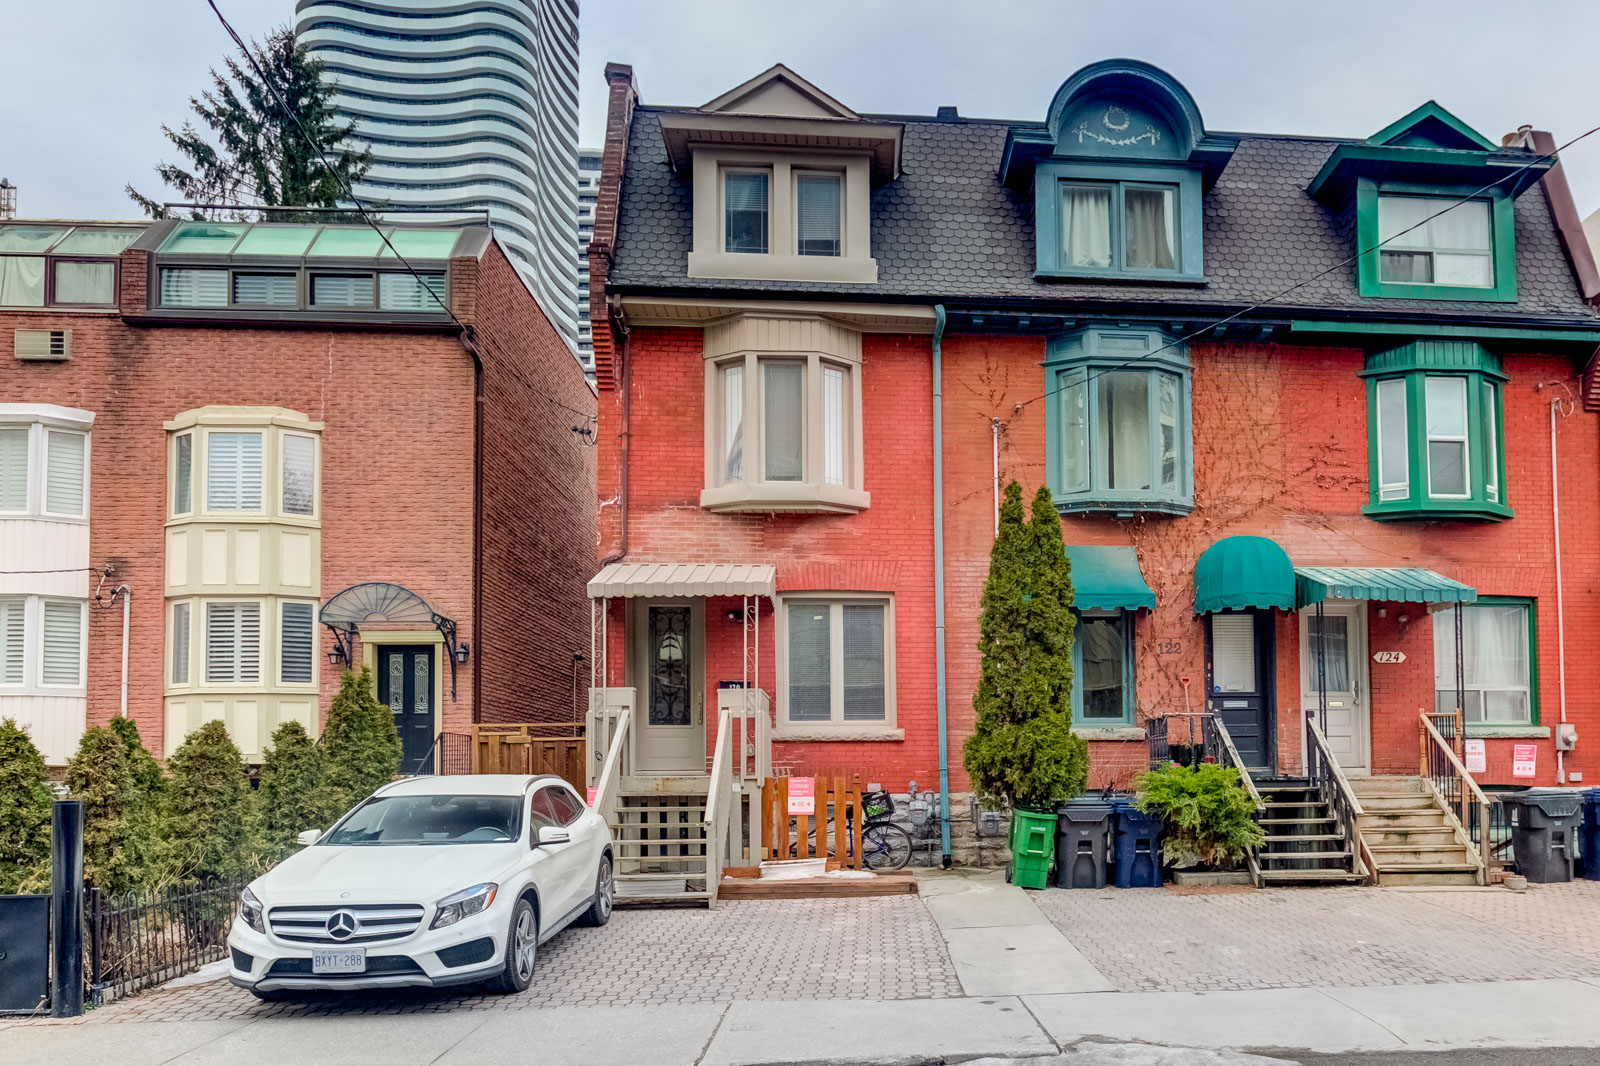 3-storey red-brick Victorian house with white Mercedes Benz in driveway of 120 McGill St, Toronto.